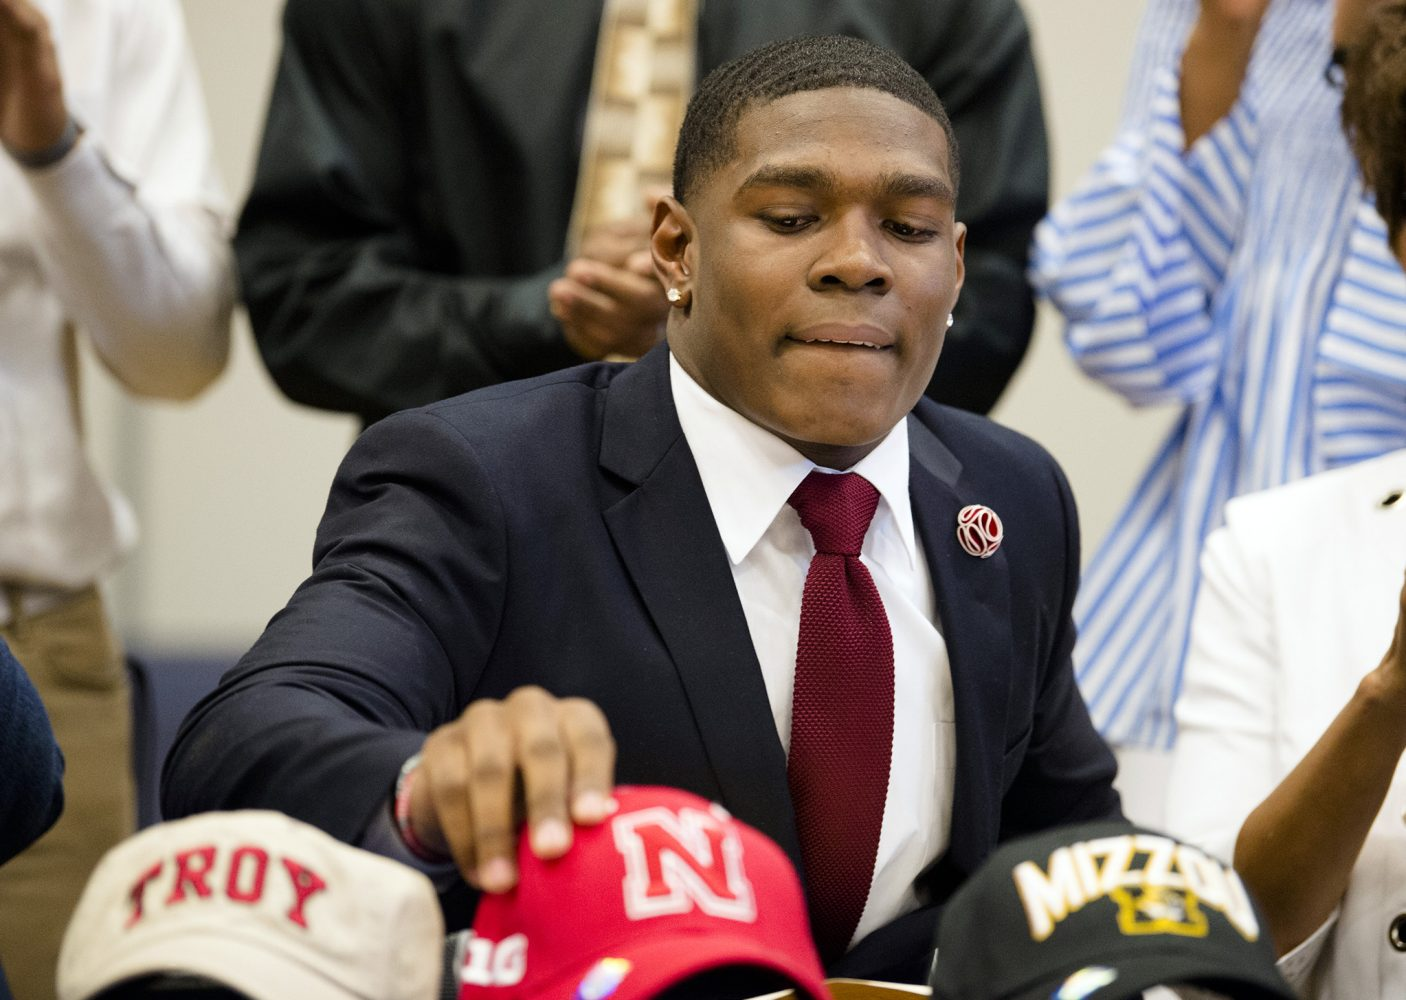 It's the Nebraska hat for Cameron Taylor.